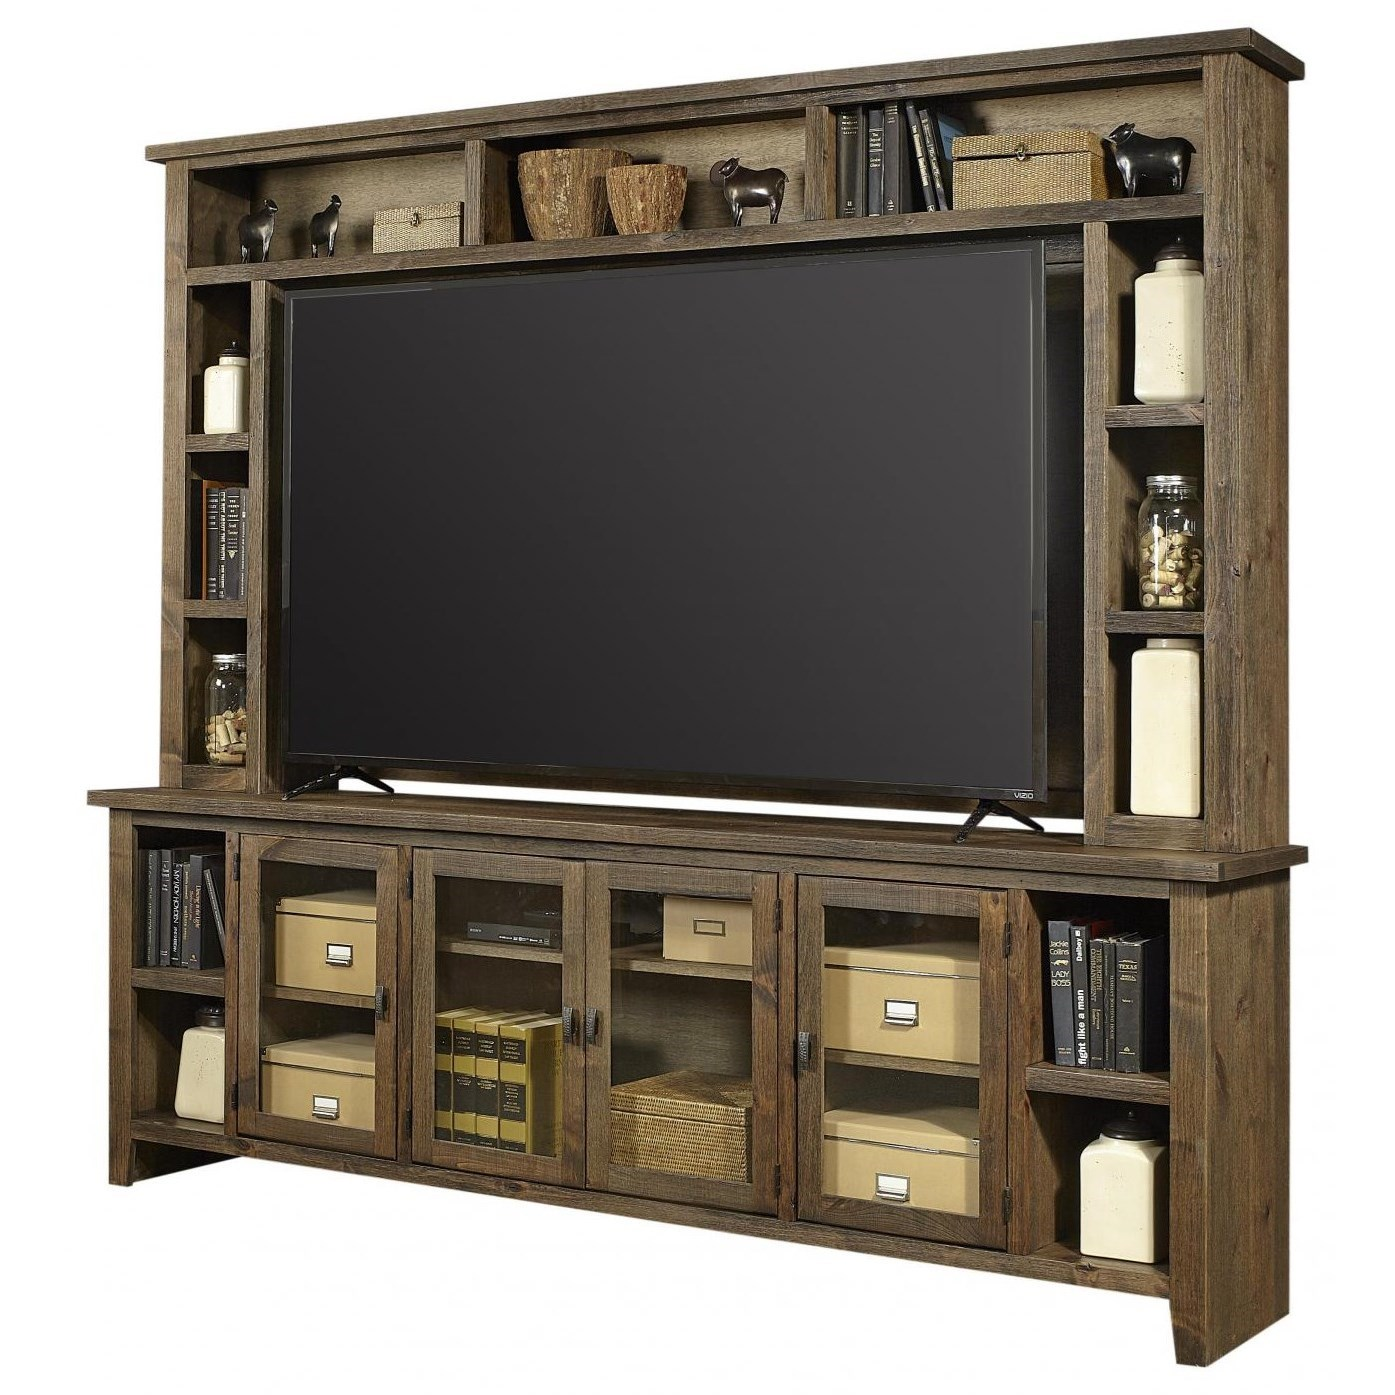 Alder Grove TV Stand with Hutch by Birch Home at Sprintz Furniture